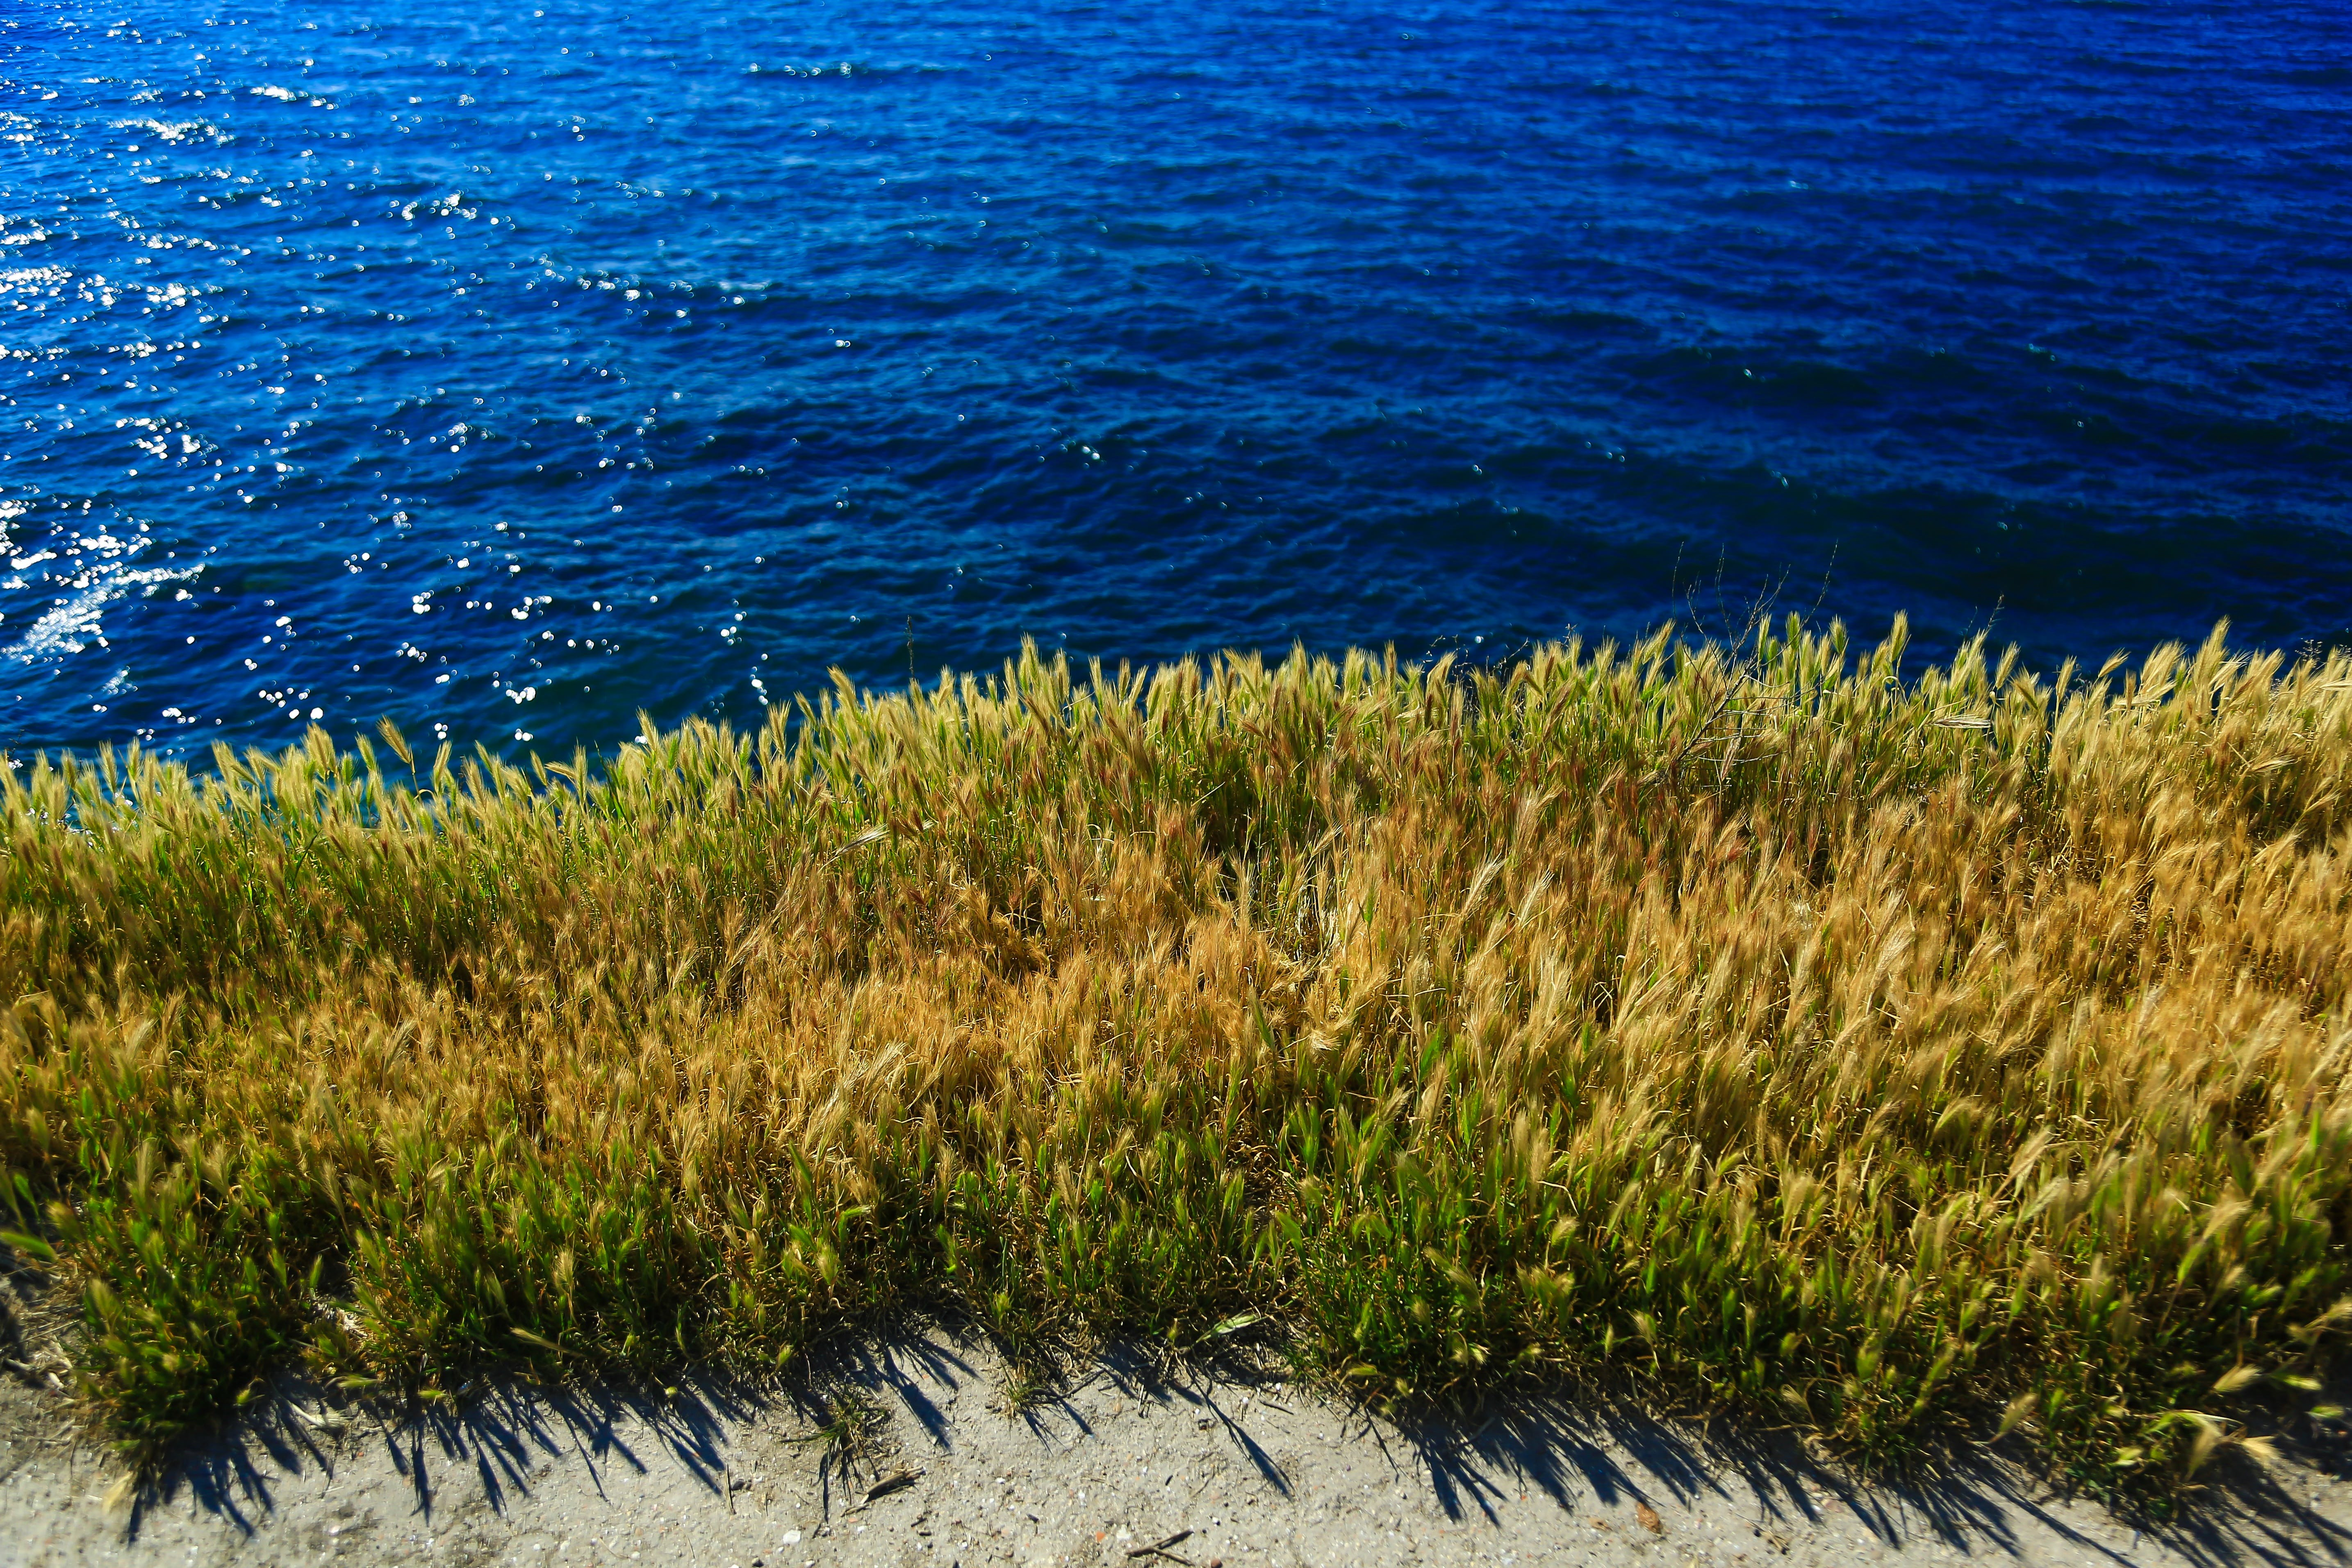 Yellow and Green Grass Beside Body of Water